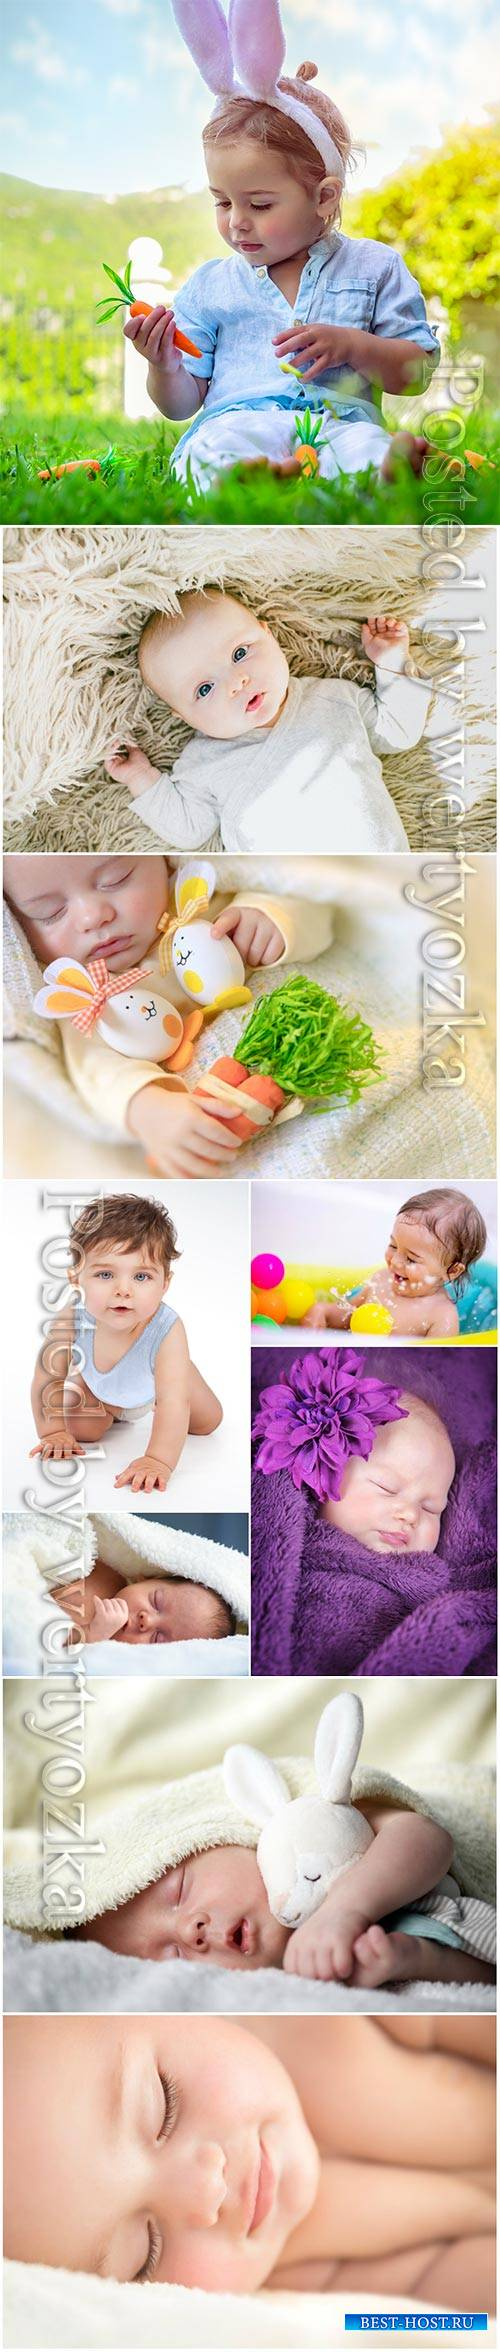 Funny little kids stock photo